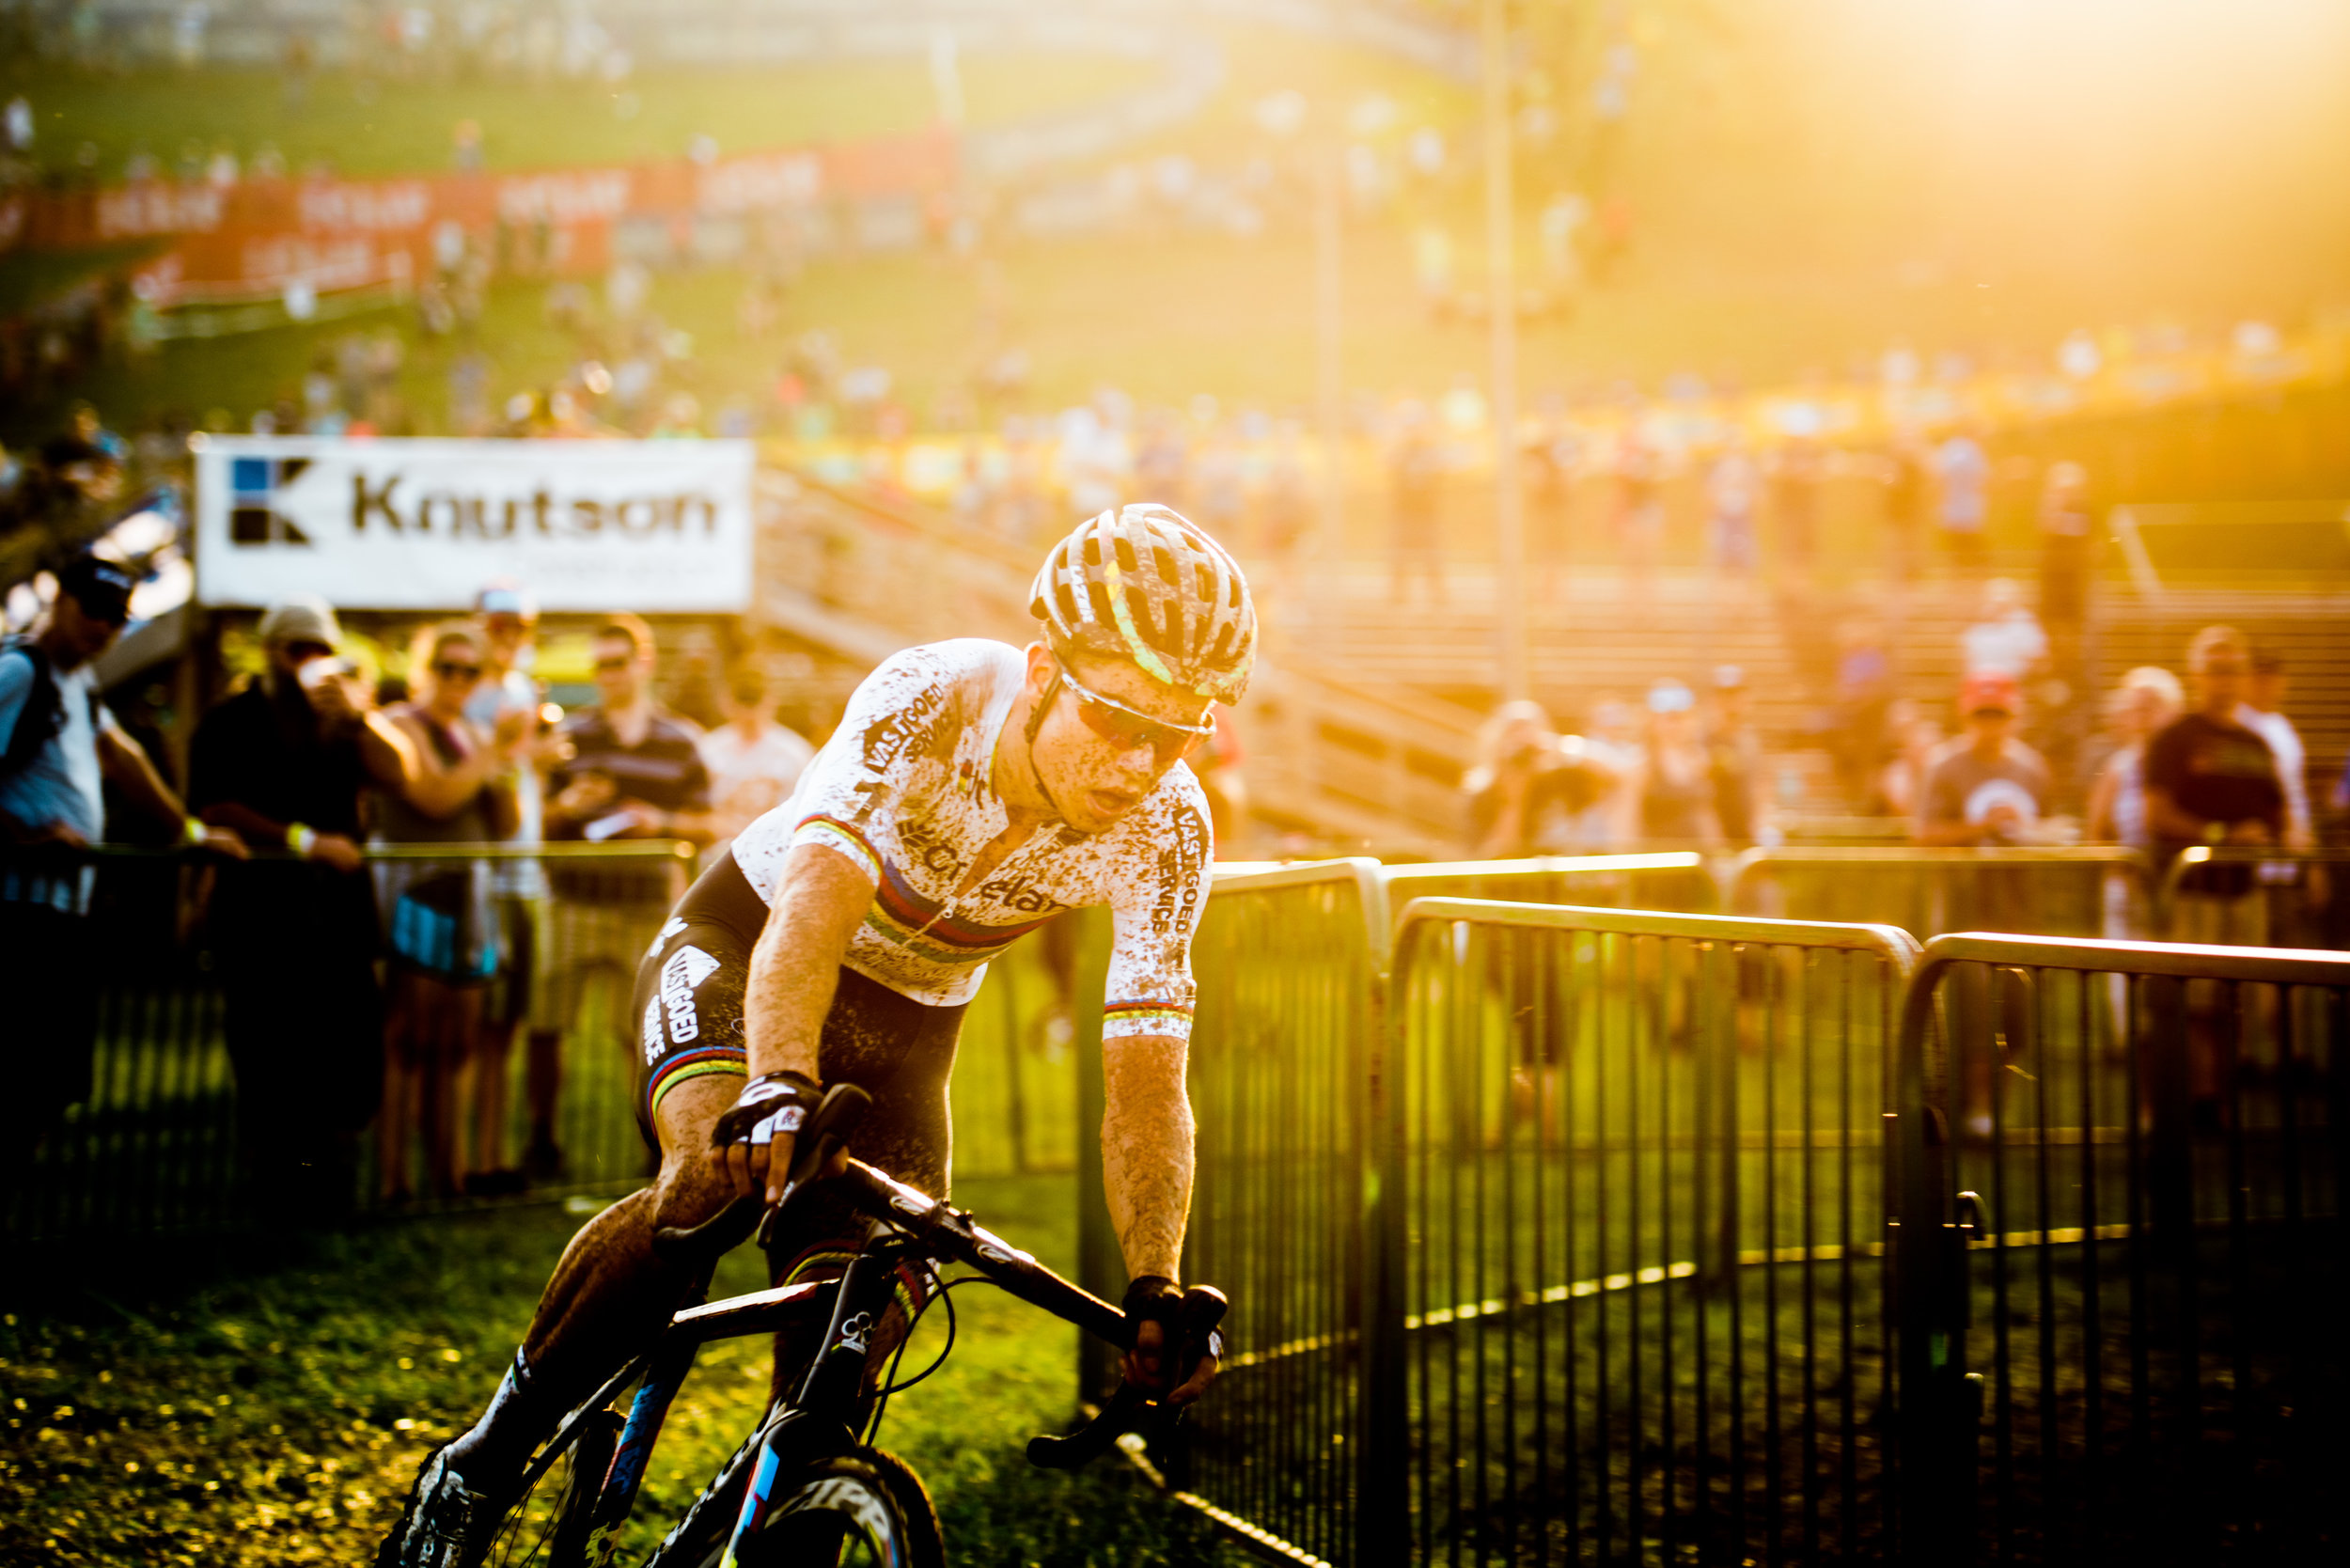 World Cyclocross Champion, Wout Van Aert of Belgium leads the World Cup race.